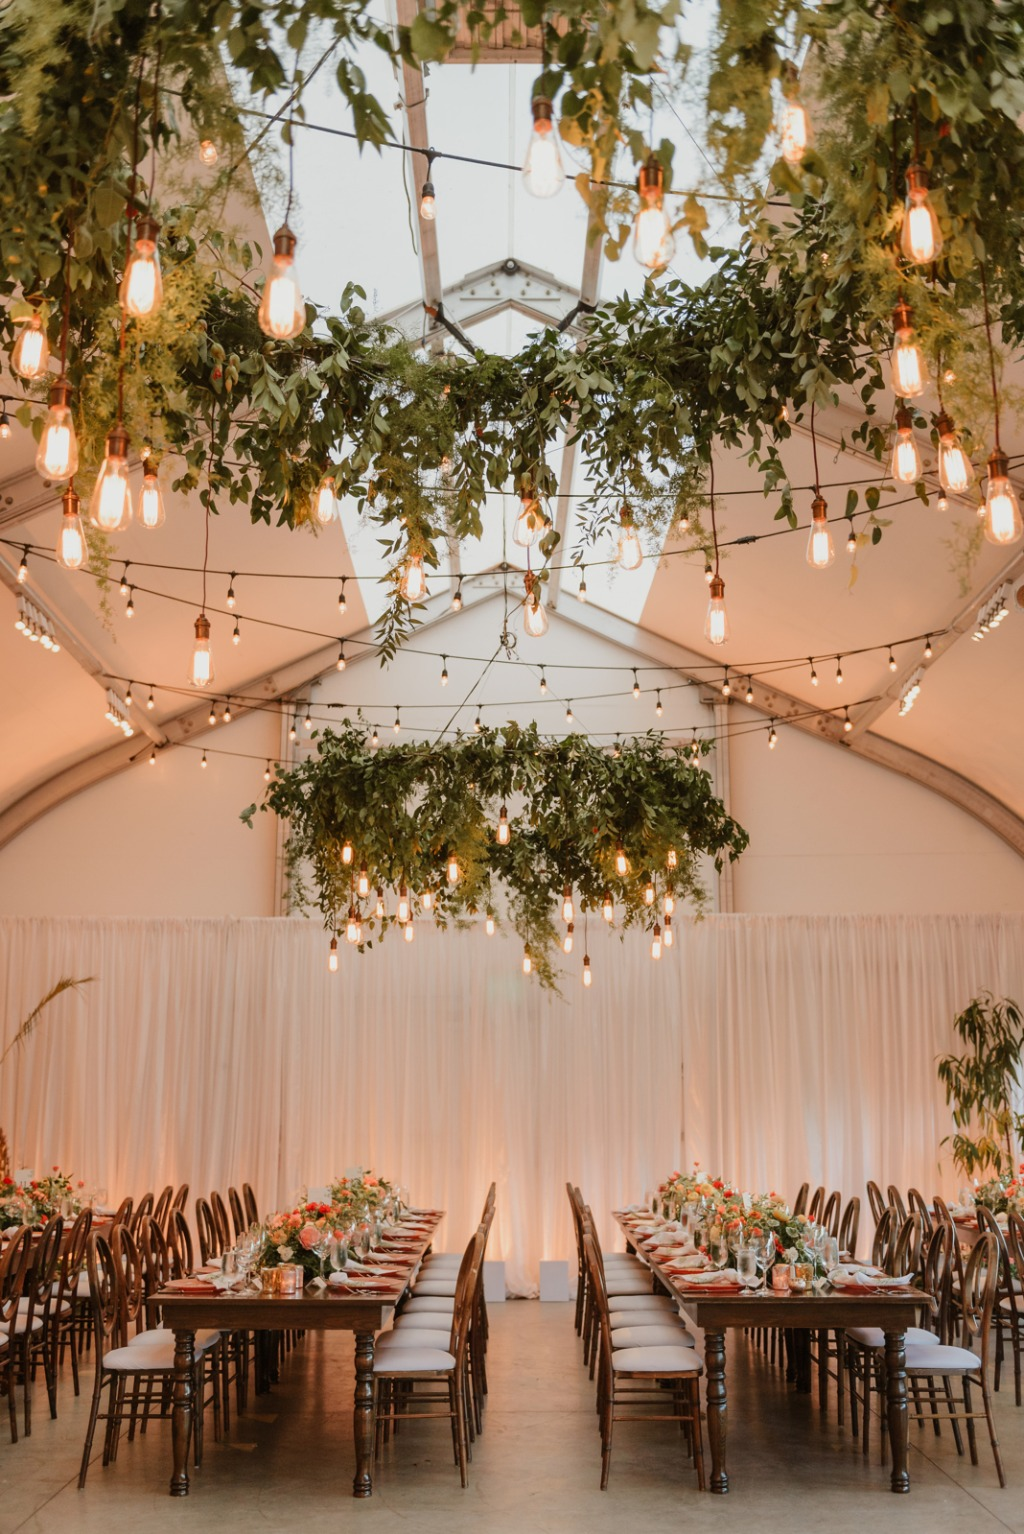 A Garden Party inspired wedding at the San Francisco Conservatory of Flowers